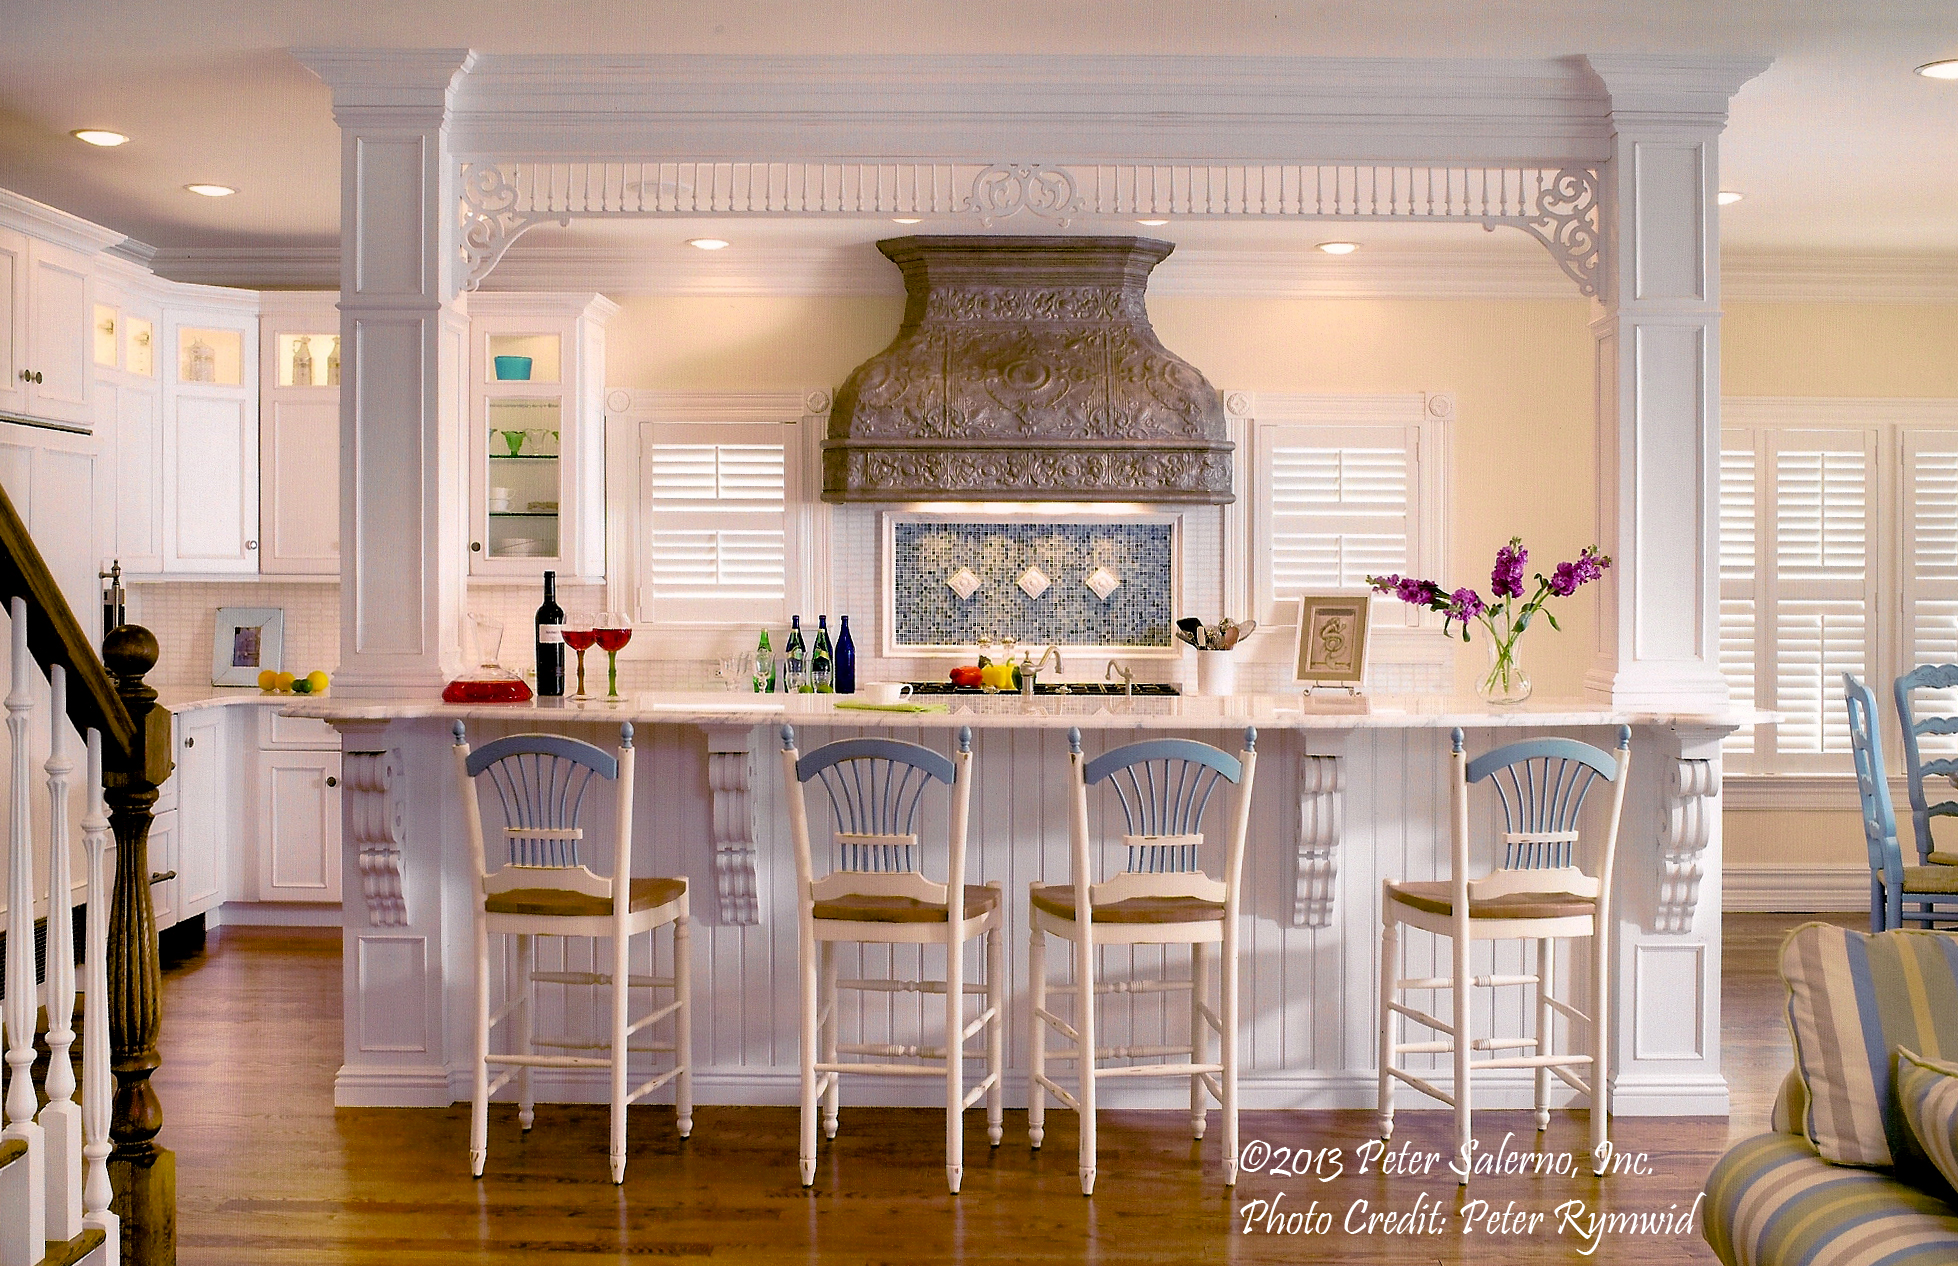 The Same Summer Kitchen Design, From Another Angle. Notice The Added  Seating!